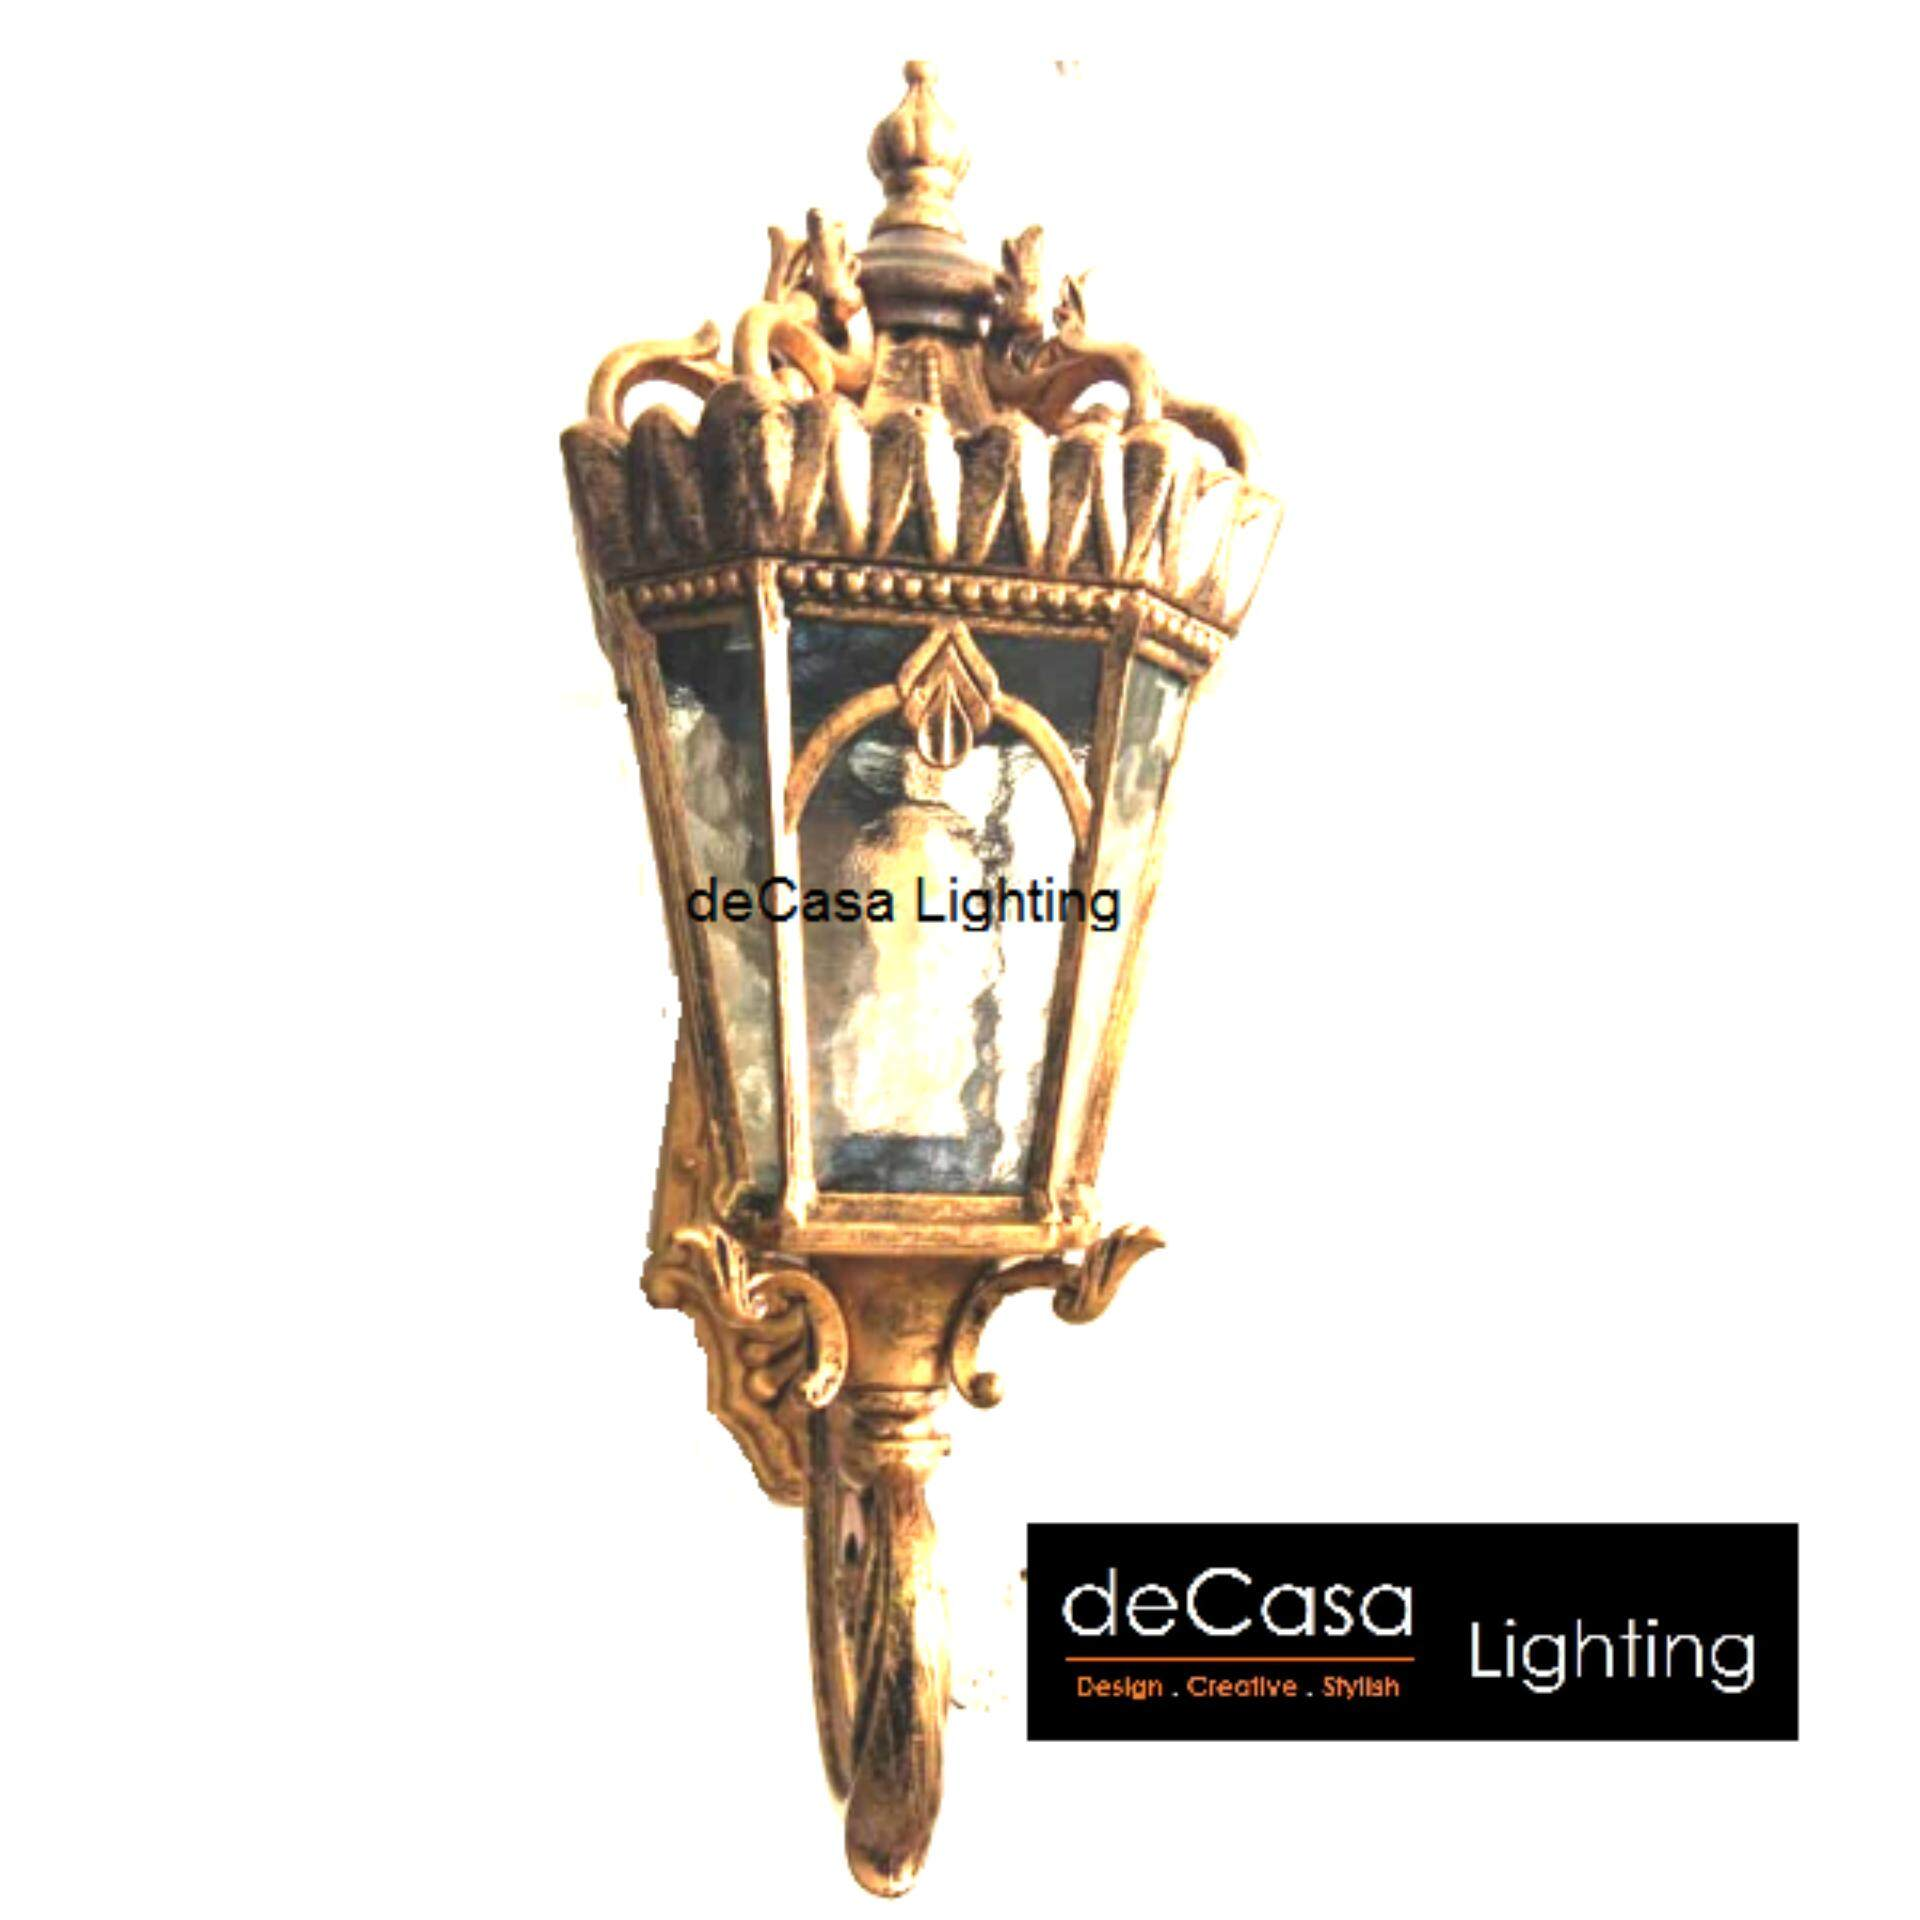 Decasa Antique Brass Outdoor Wall Light Gold Colour Wall Light Classic Wall Light (DJ-146-S-W)